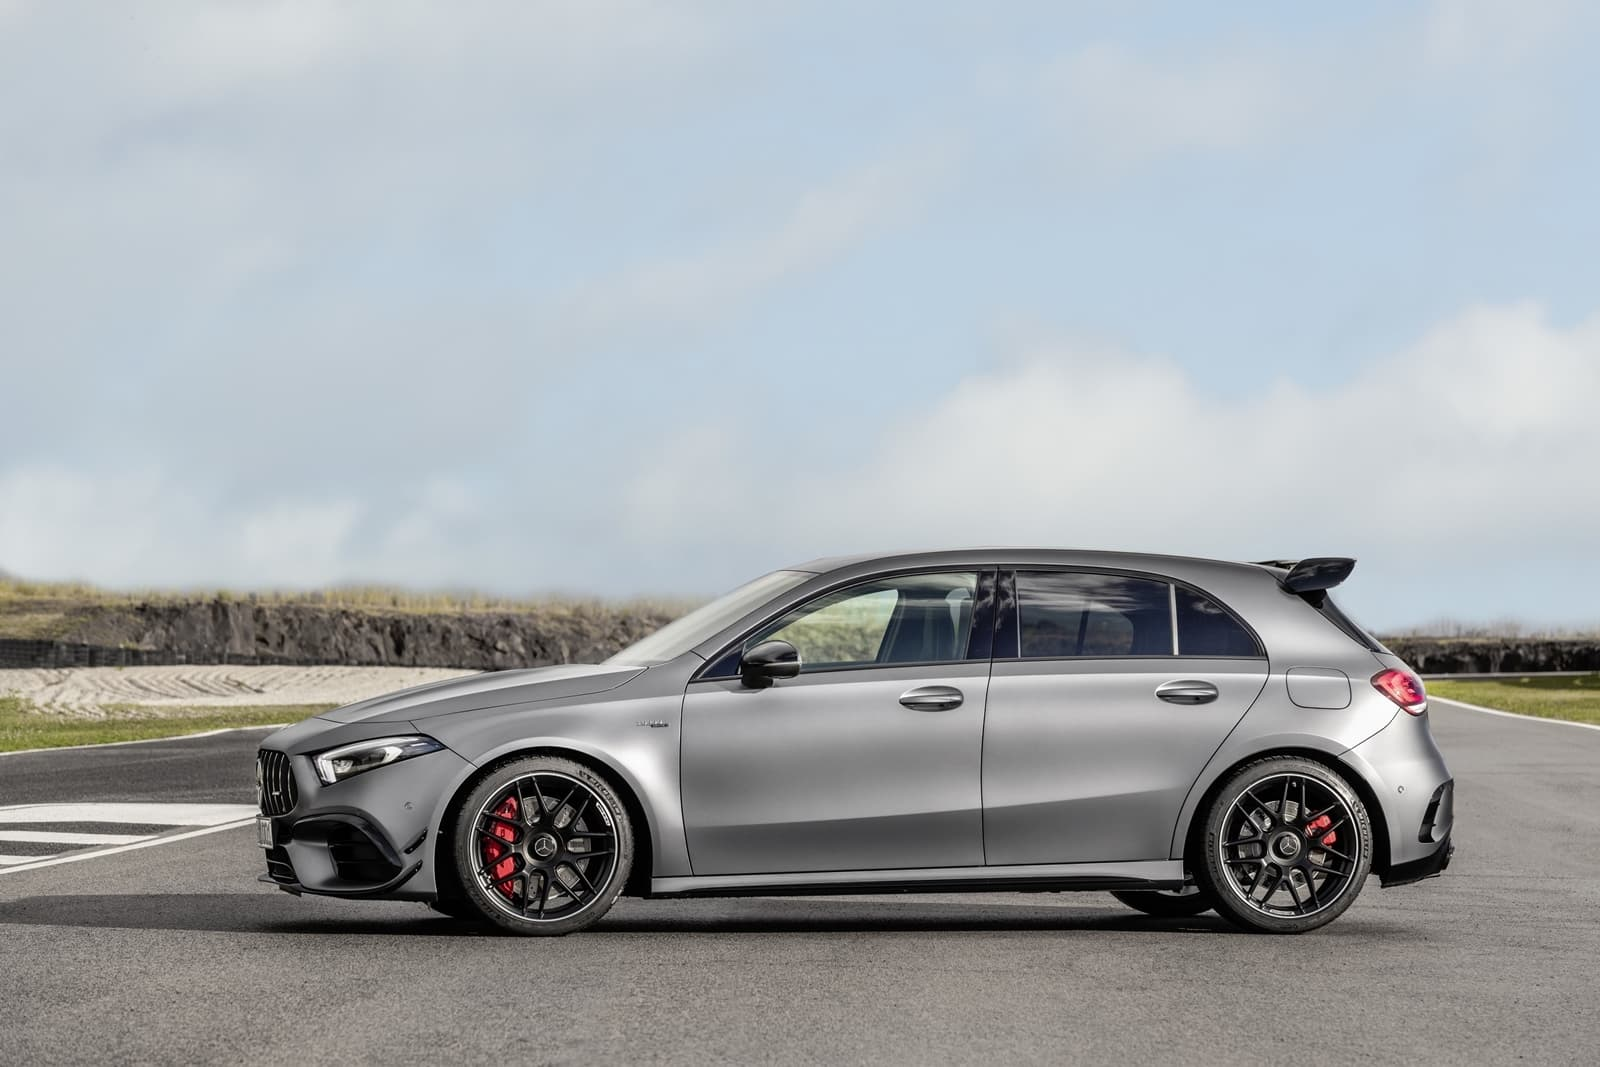 Mercedes Amg A 45 S 4matic+ (2019) Mercedes Amg A 45 S 4matic+ (2019)